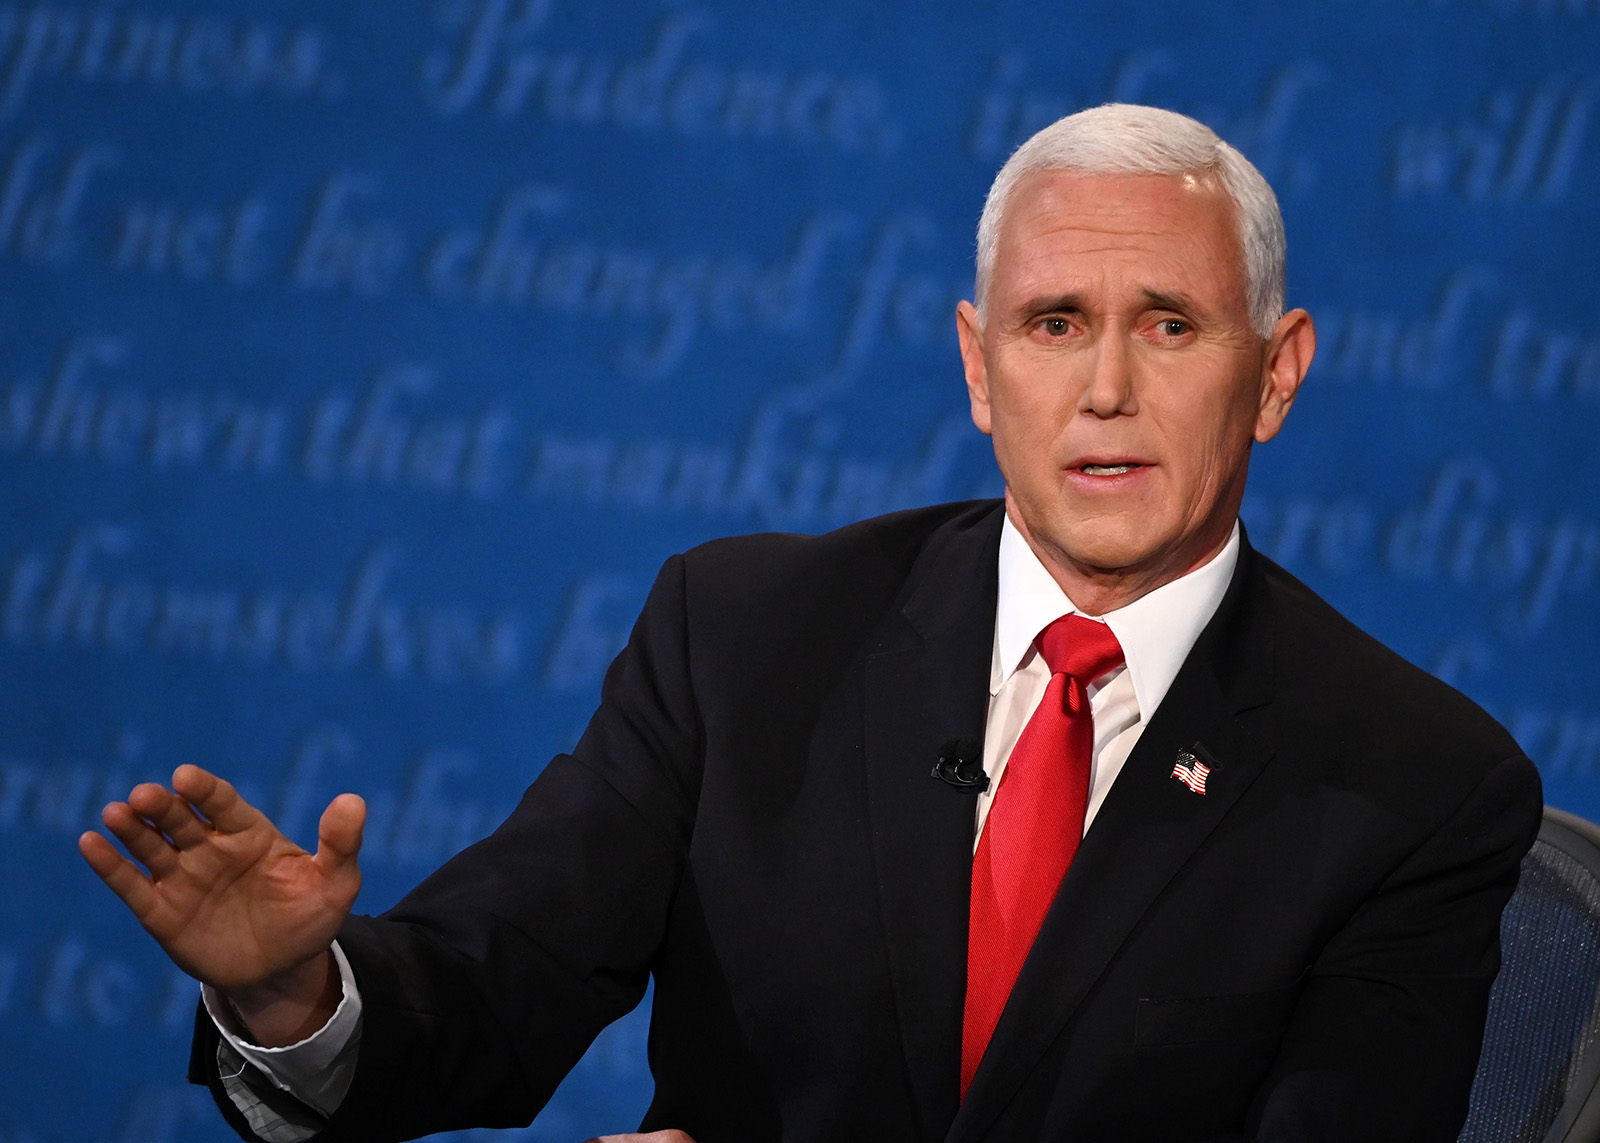 Vice President Mike Pence speaks during the vice presidential debate on Wednesday in Salt Lake City.